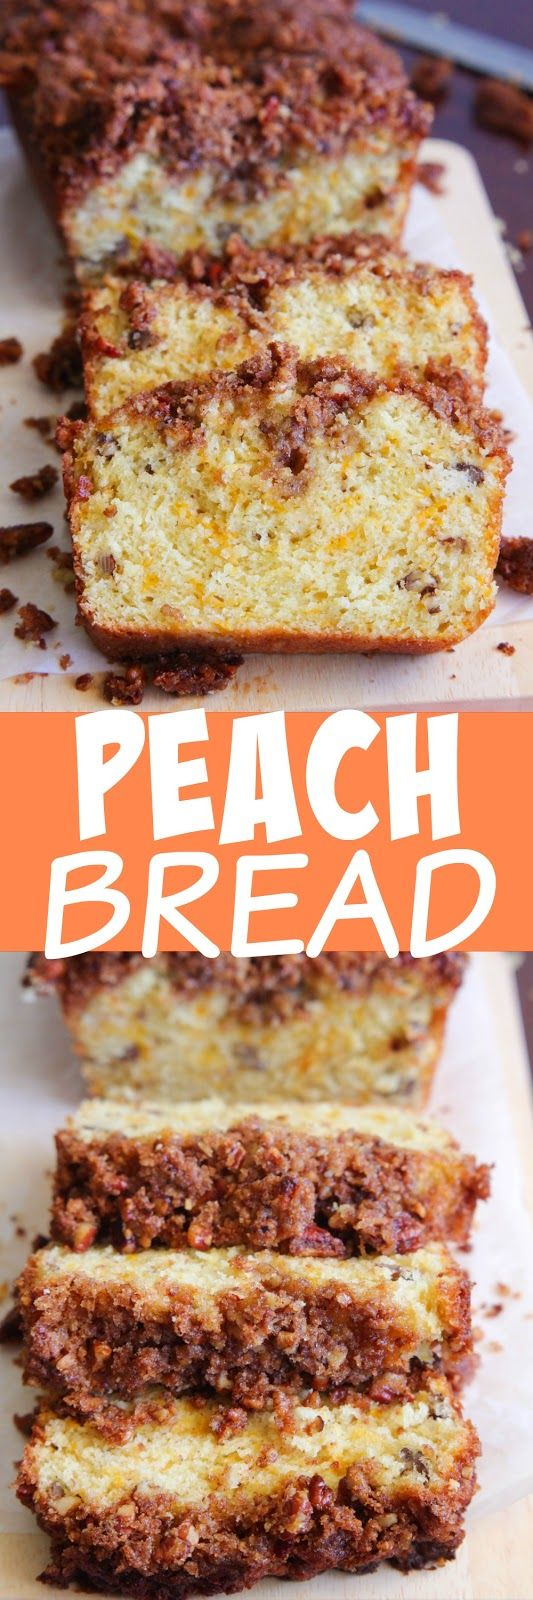 Eat Cake For Dinner Peach Bread And Country Cooking From A Redneck Kitchen Cookbook Review